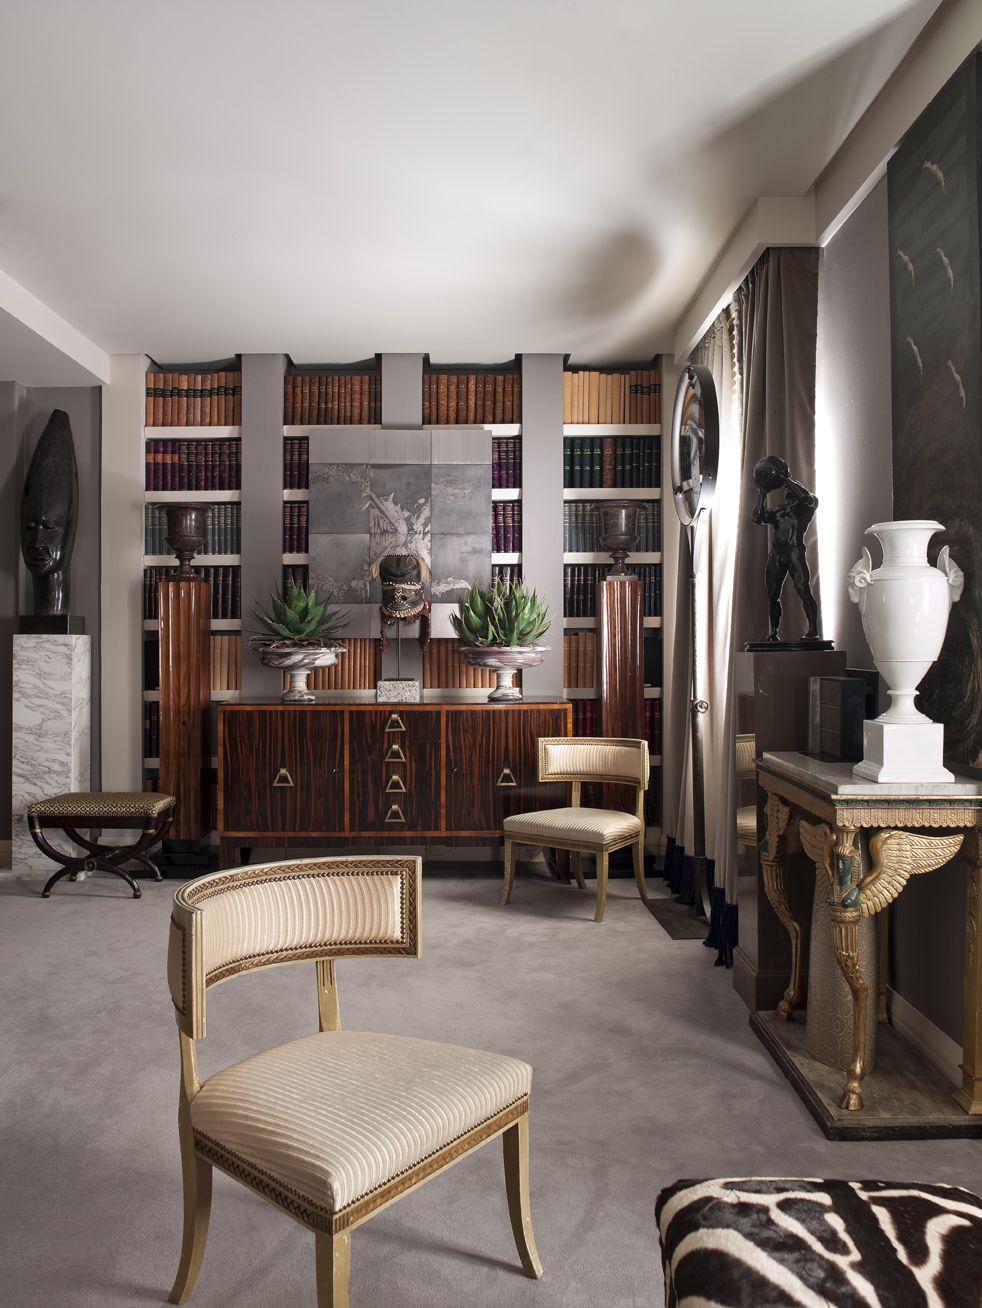 design project, luxury house, furniture, works of art, Neoclassicism, Luxury furniture, abstract art, tribal, contemporary, Ramon Garcia Jurado luxury house Classic Meets Modern: Luxury House by Ramon Garcia Jurado Classic Meets Modern Luxury House by Ramon Garcia Jurado 4